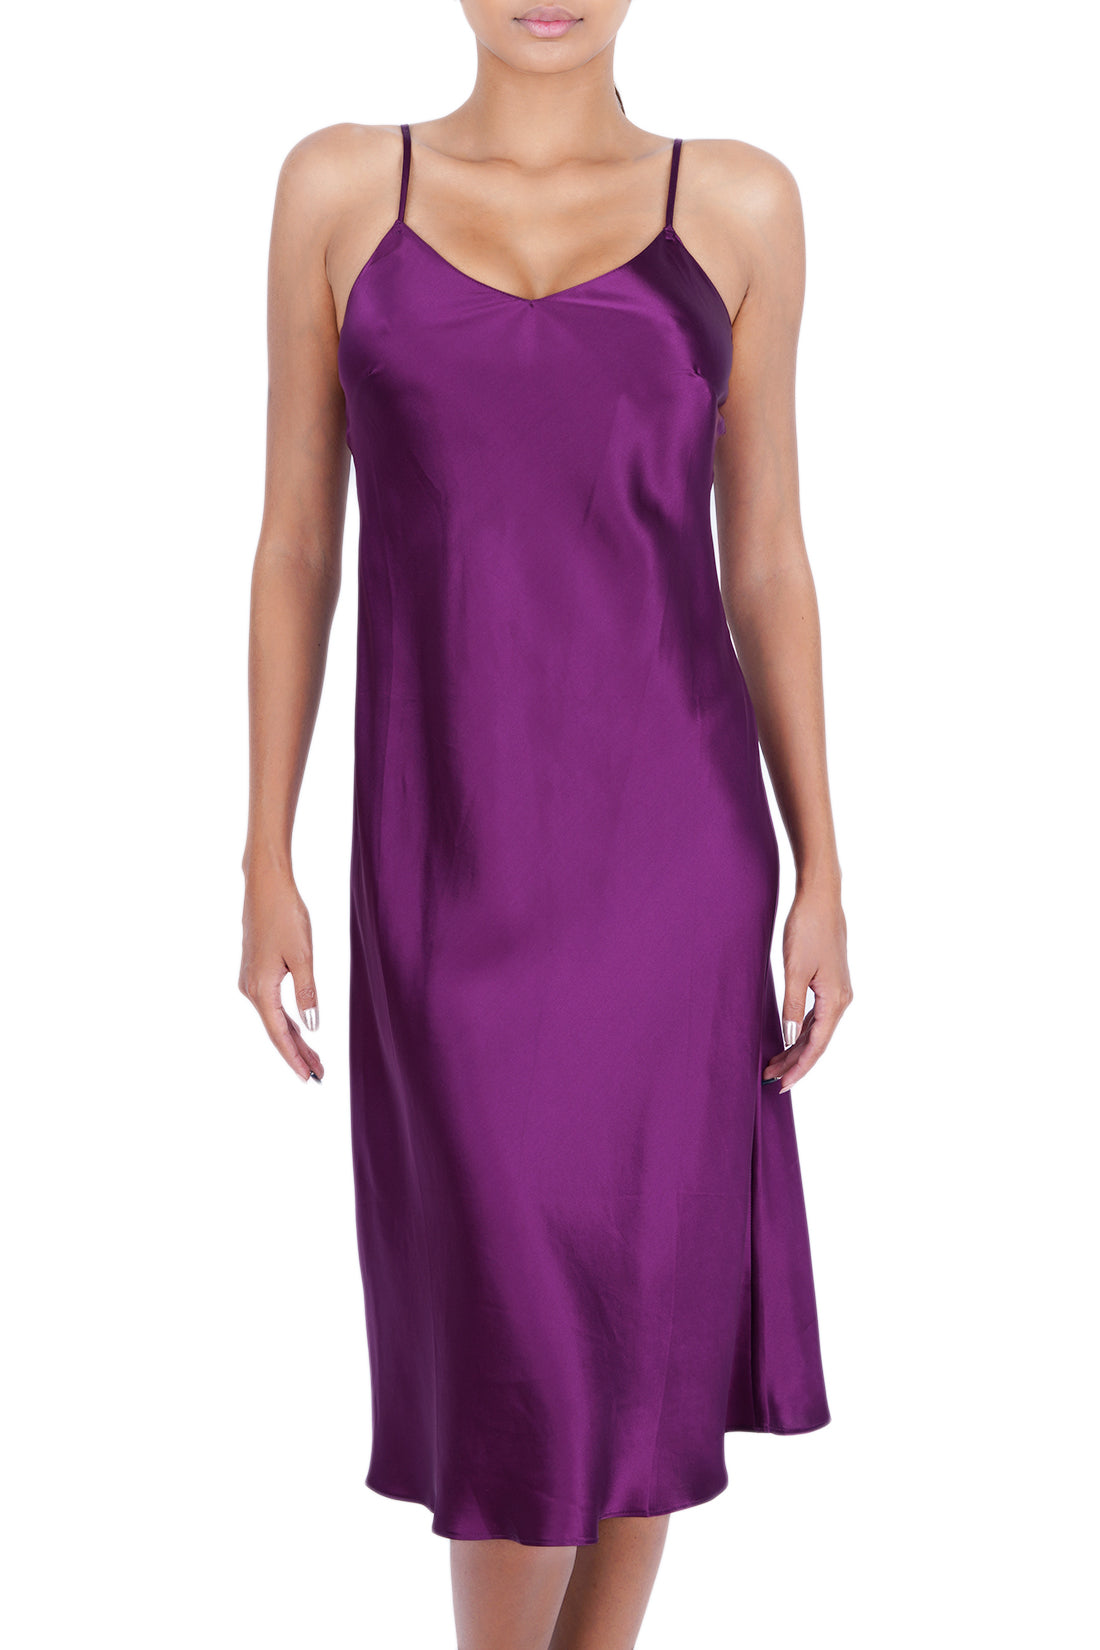 Women's Luxury Silk Sleepwear 100% Silk Full Slip Chemise Lingerie Nightgown -OSCAR ROSSA